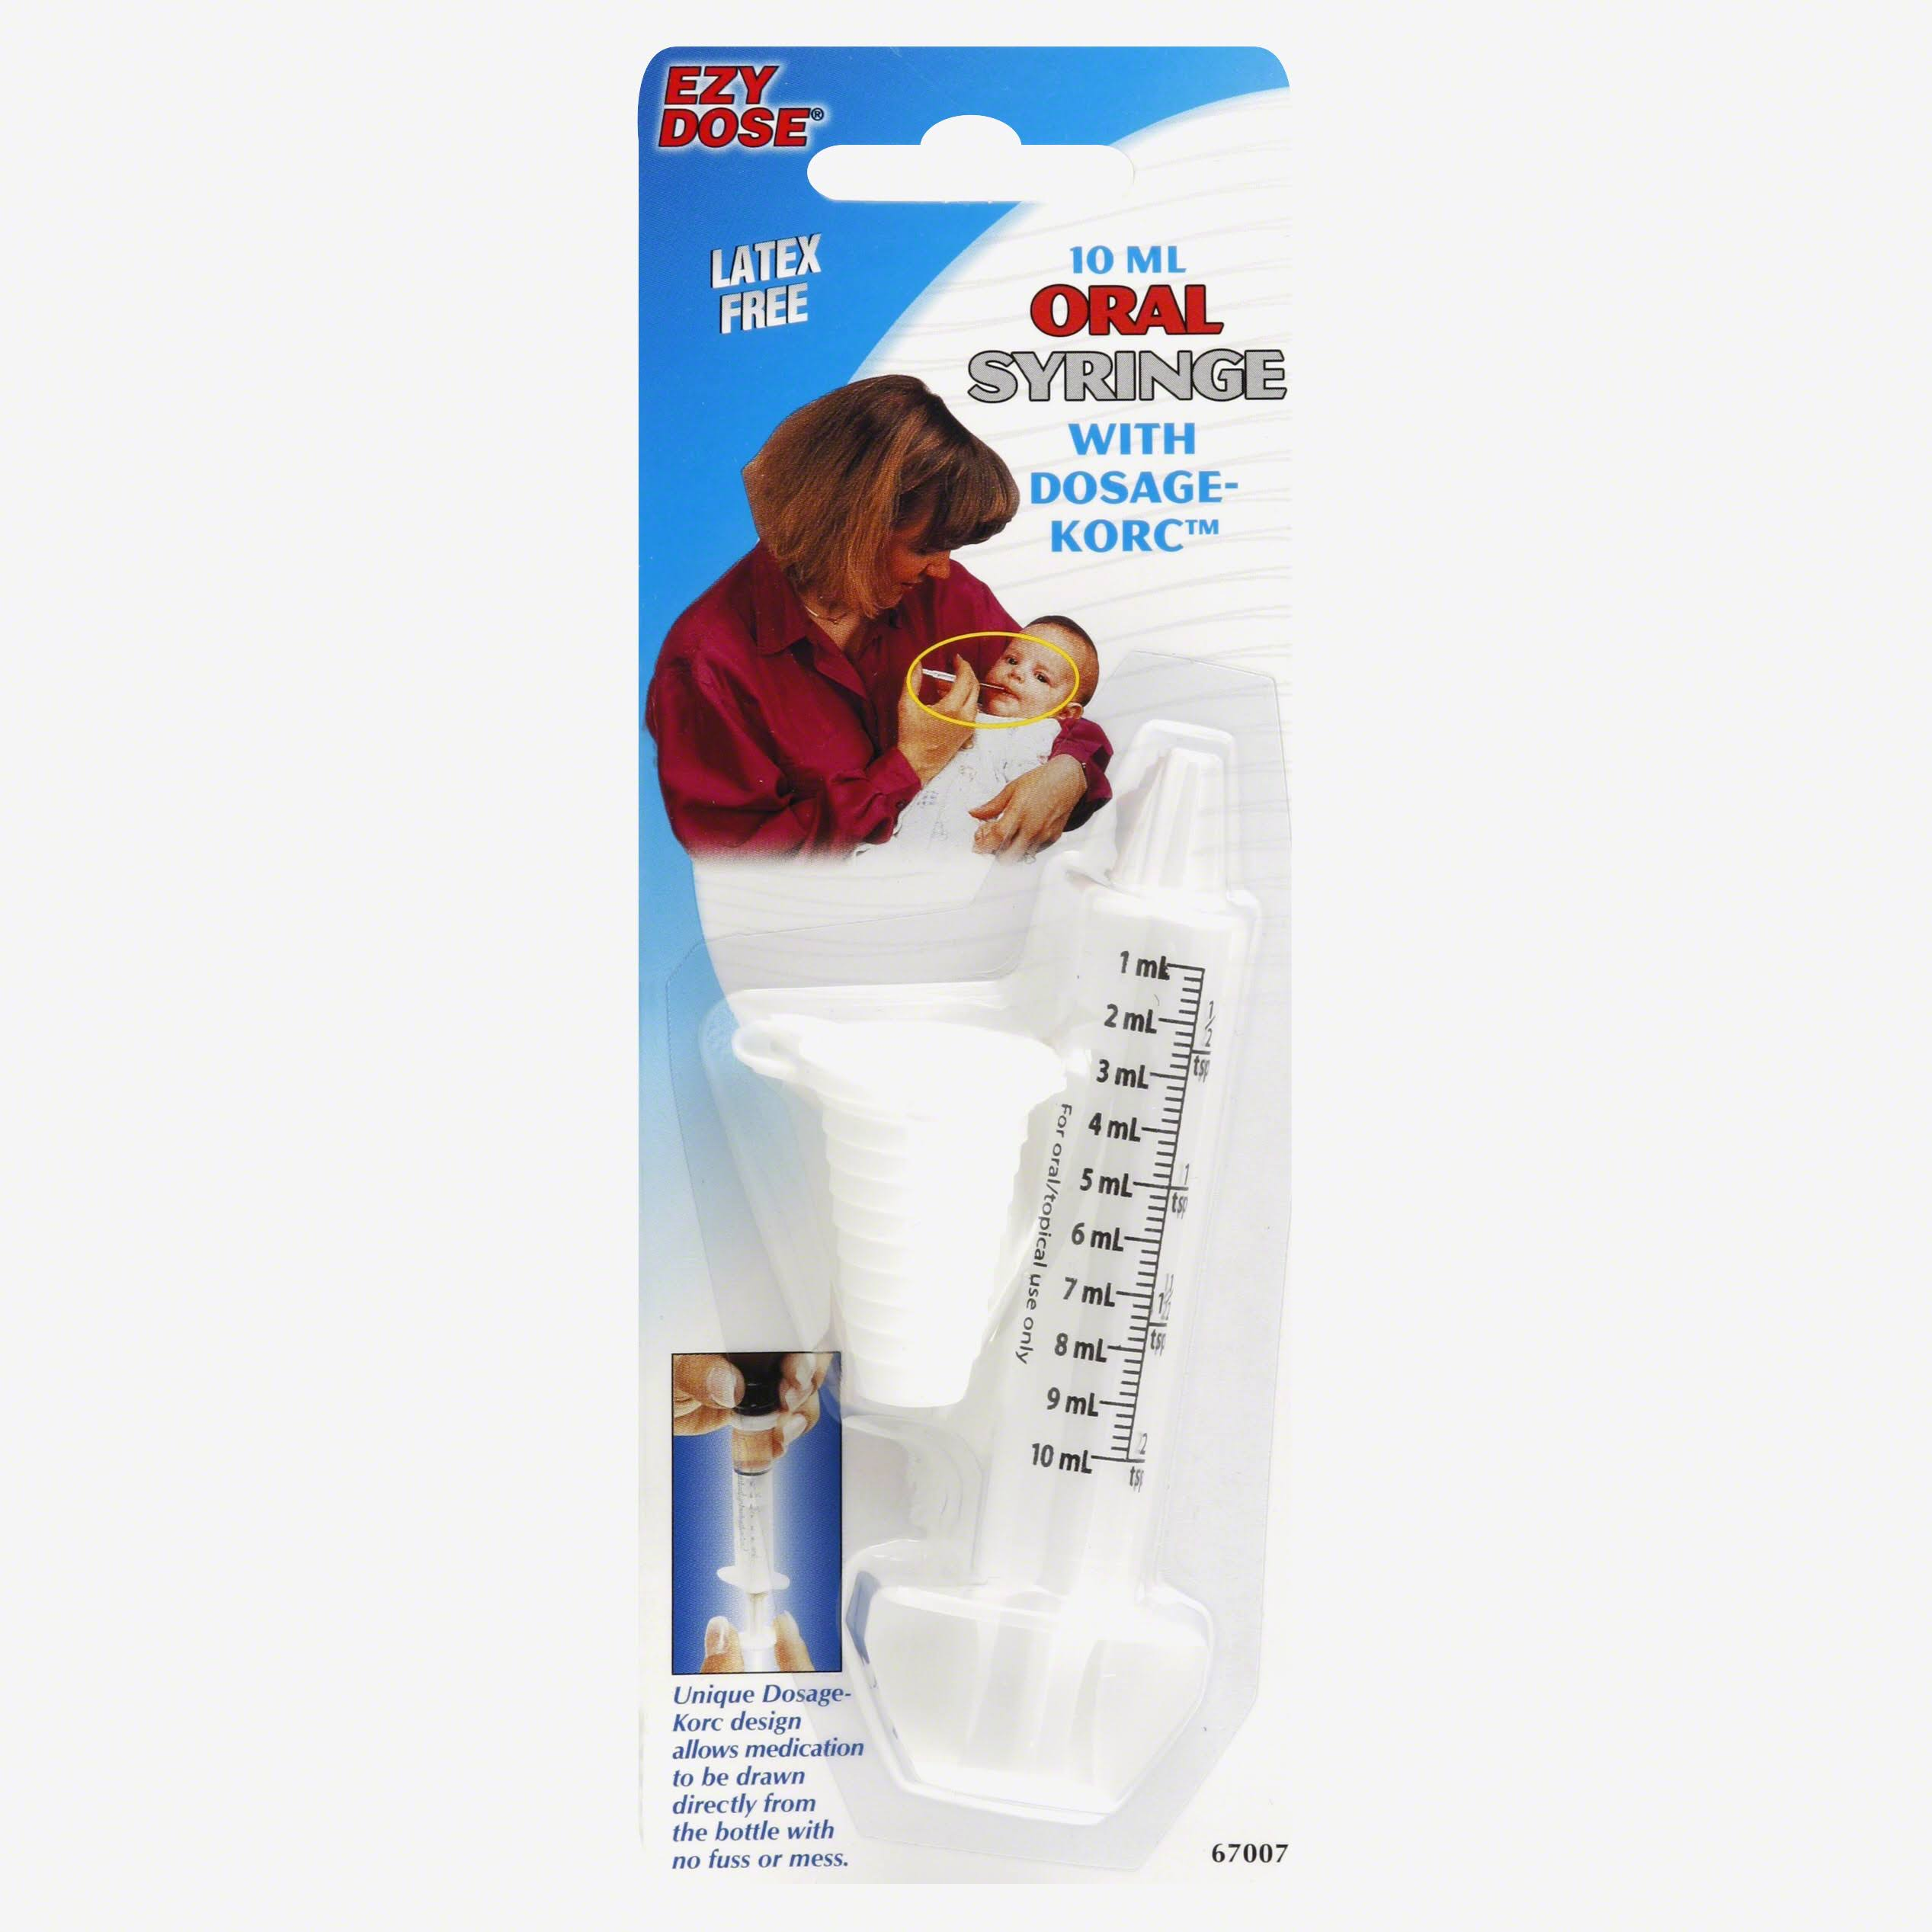 Ezy Dose Dosage Korc Oral Syringe